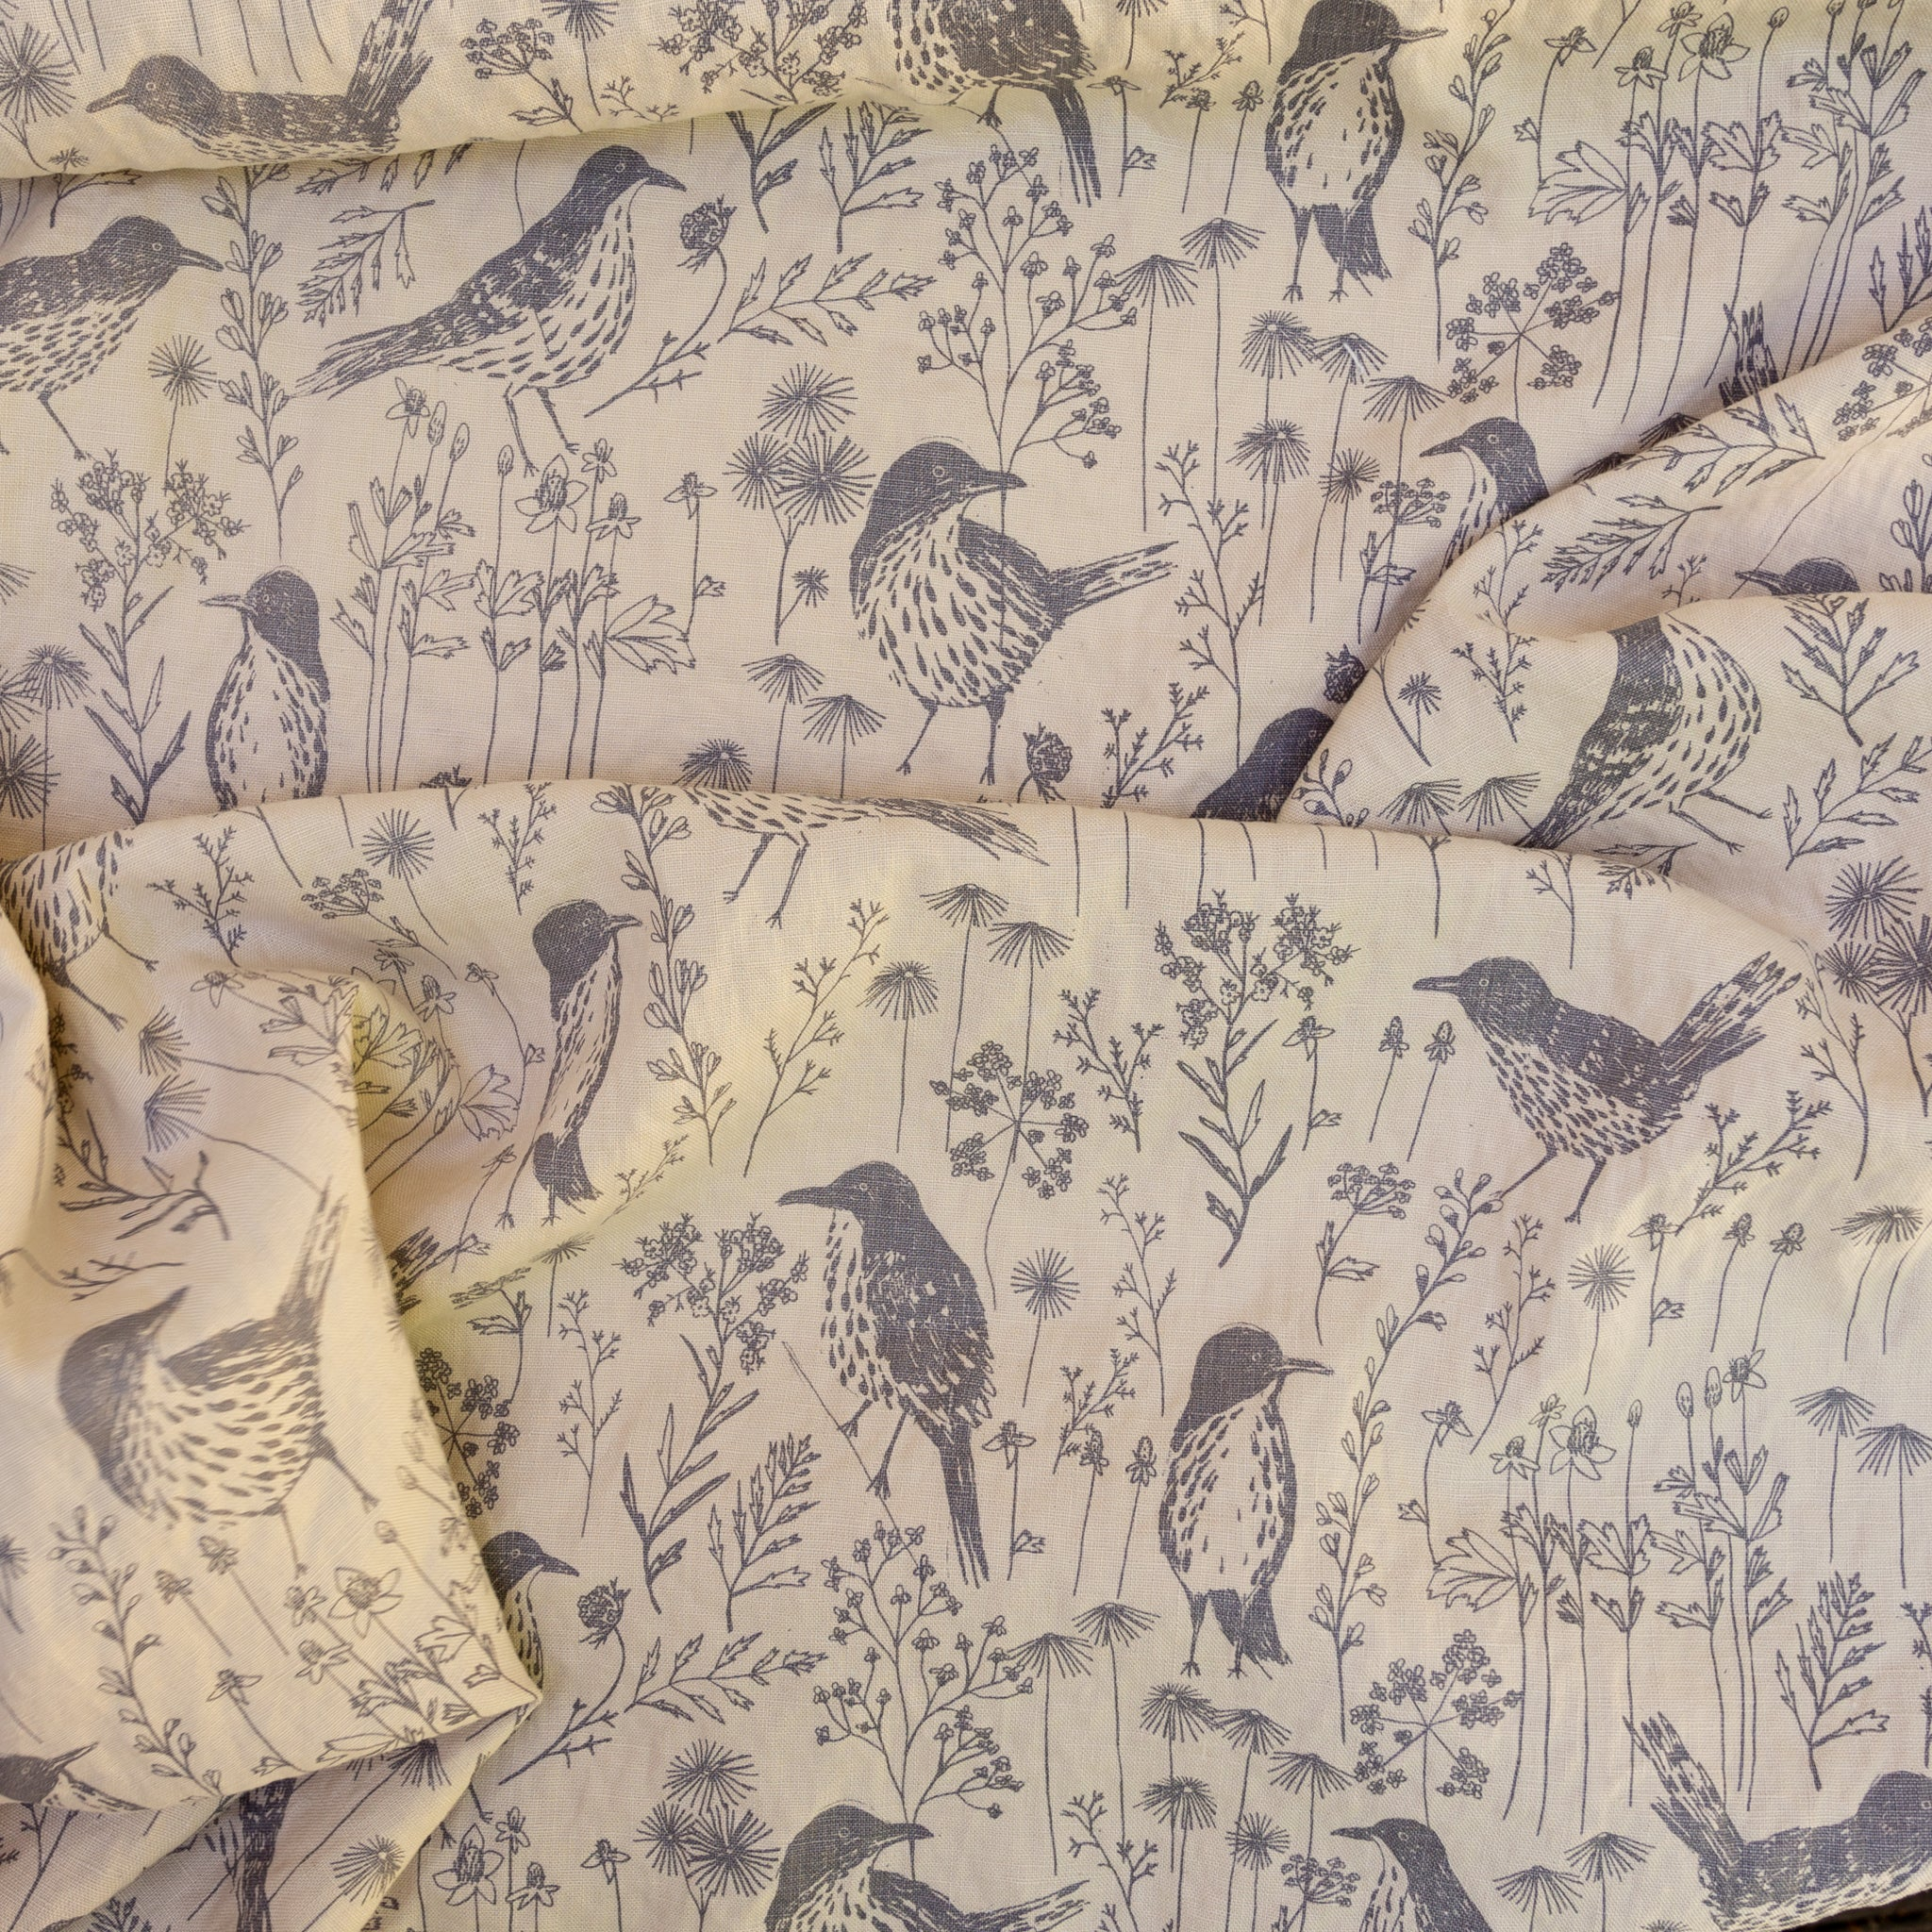 Screenprinted fabric yardage of brown thrashers by Sara Parker Textiles